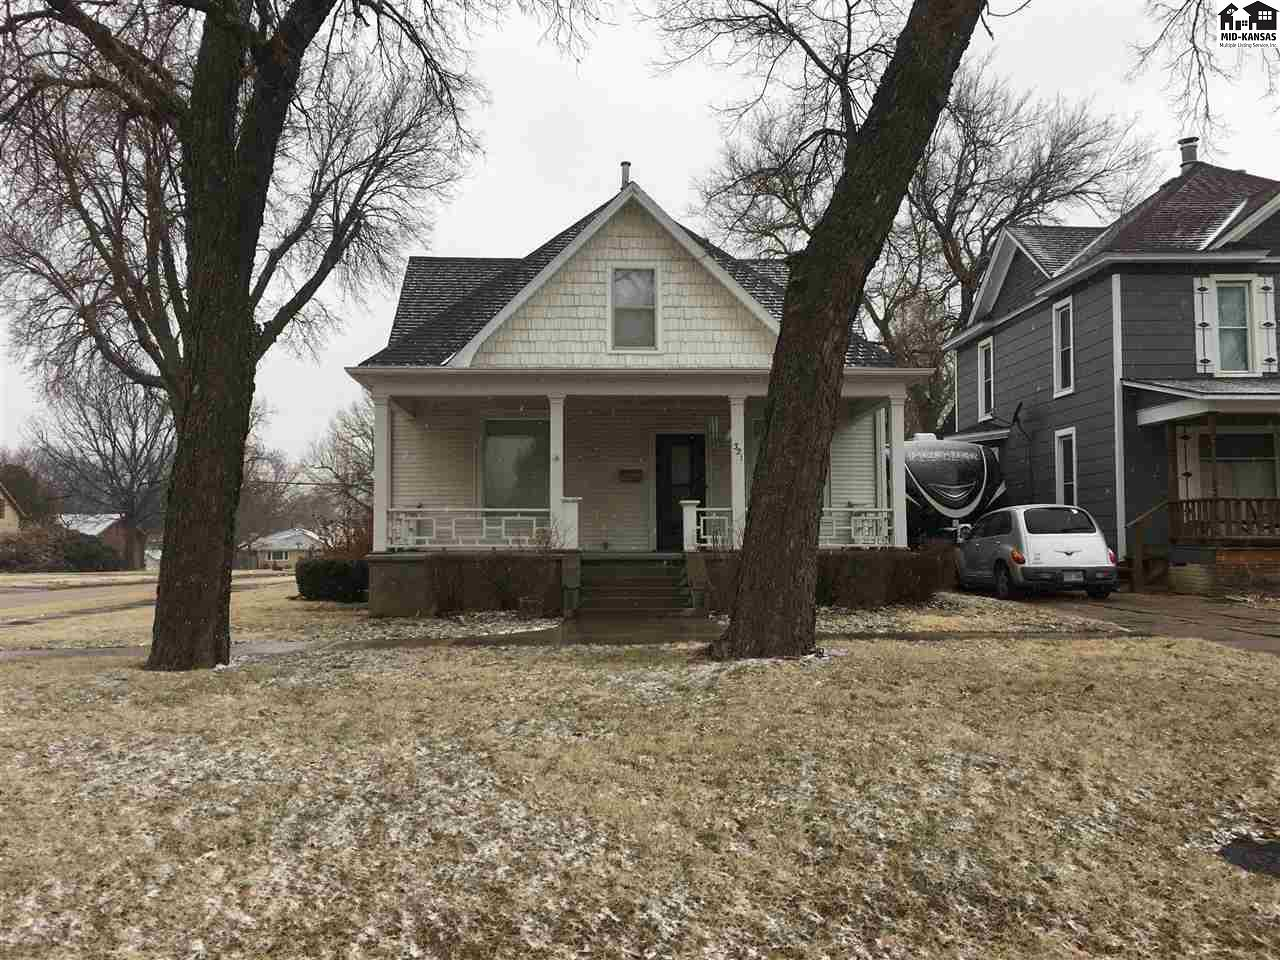 Come check out this 2 story Bungalow house with 5 bedrooms, 1 1/2 baths with a detached 2 stall garage on a corner lot. A new basement was poured in 2012 along with a new front porch.